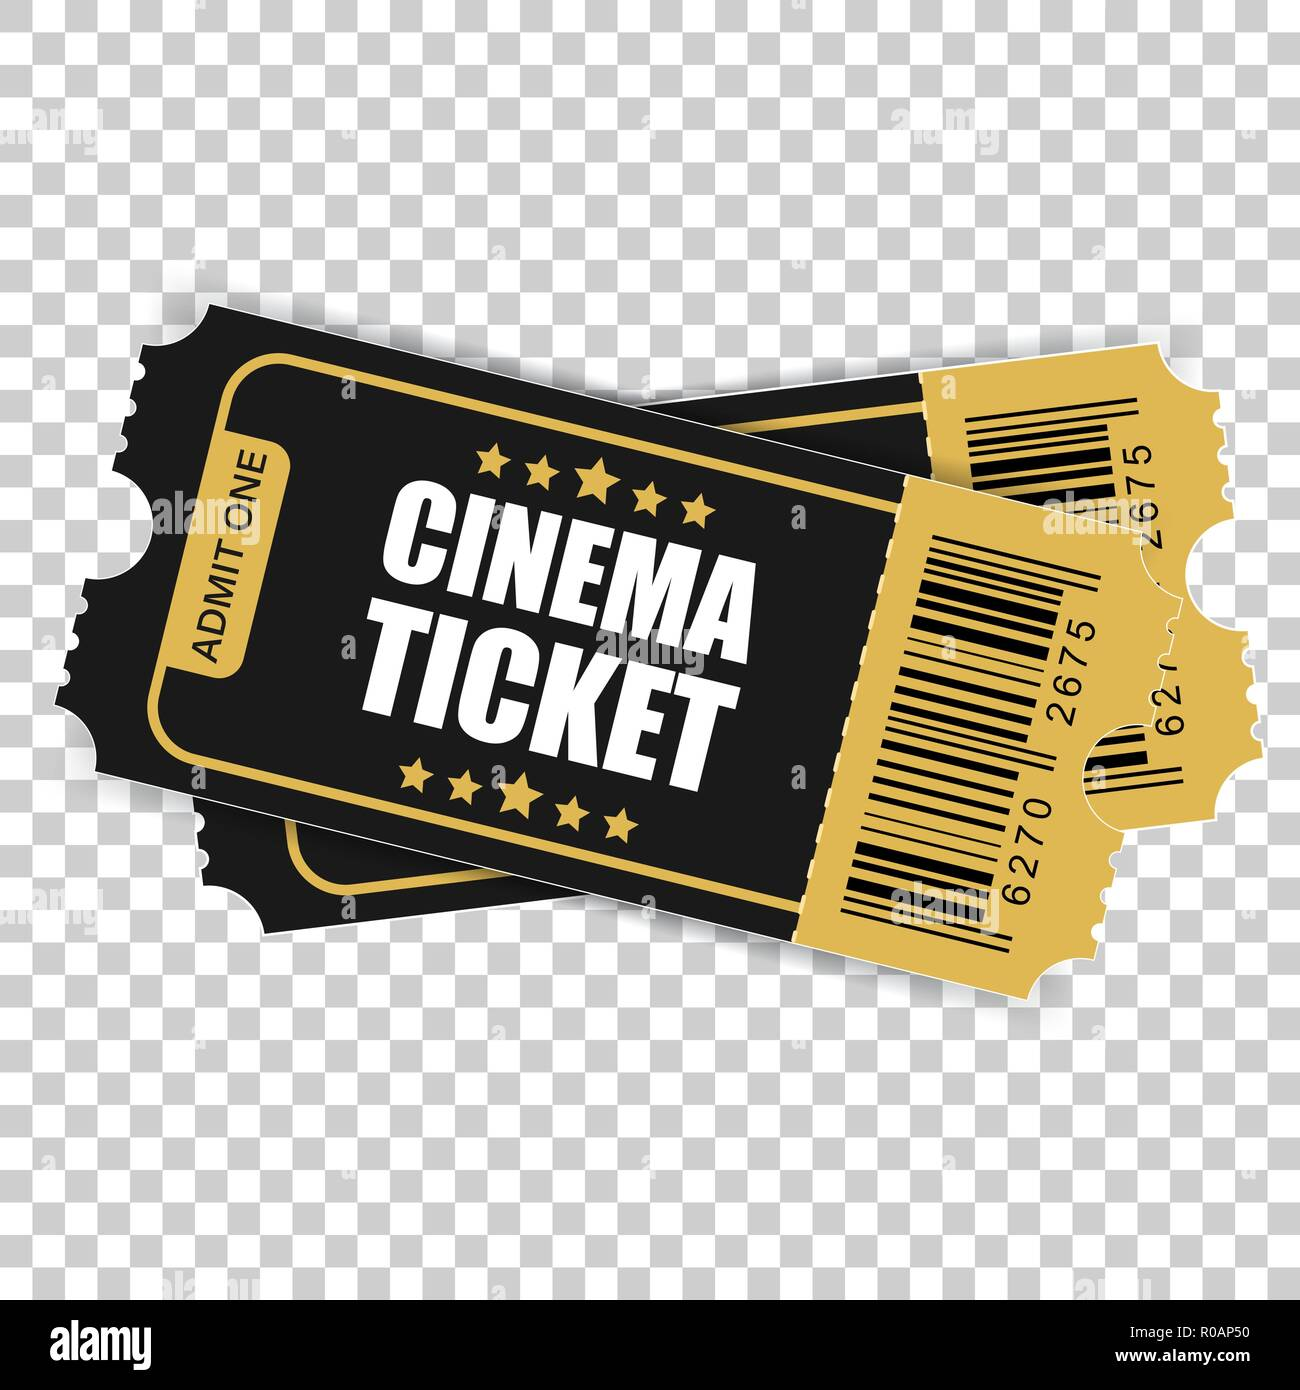 realistic cinema ticket icon in flat style admit one coupon